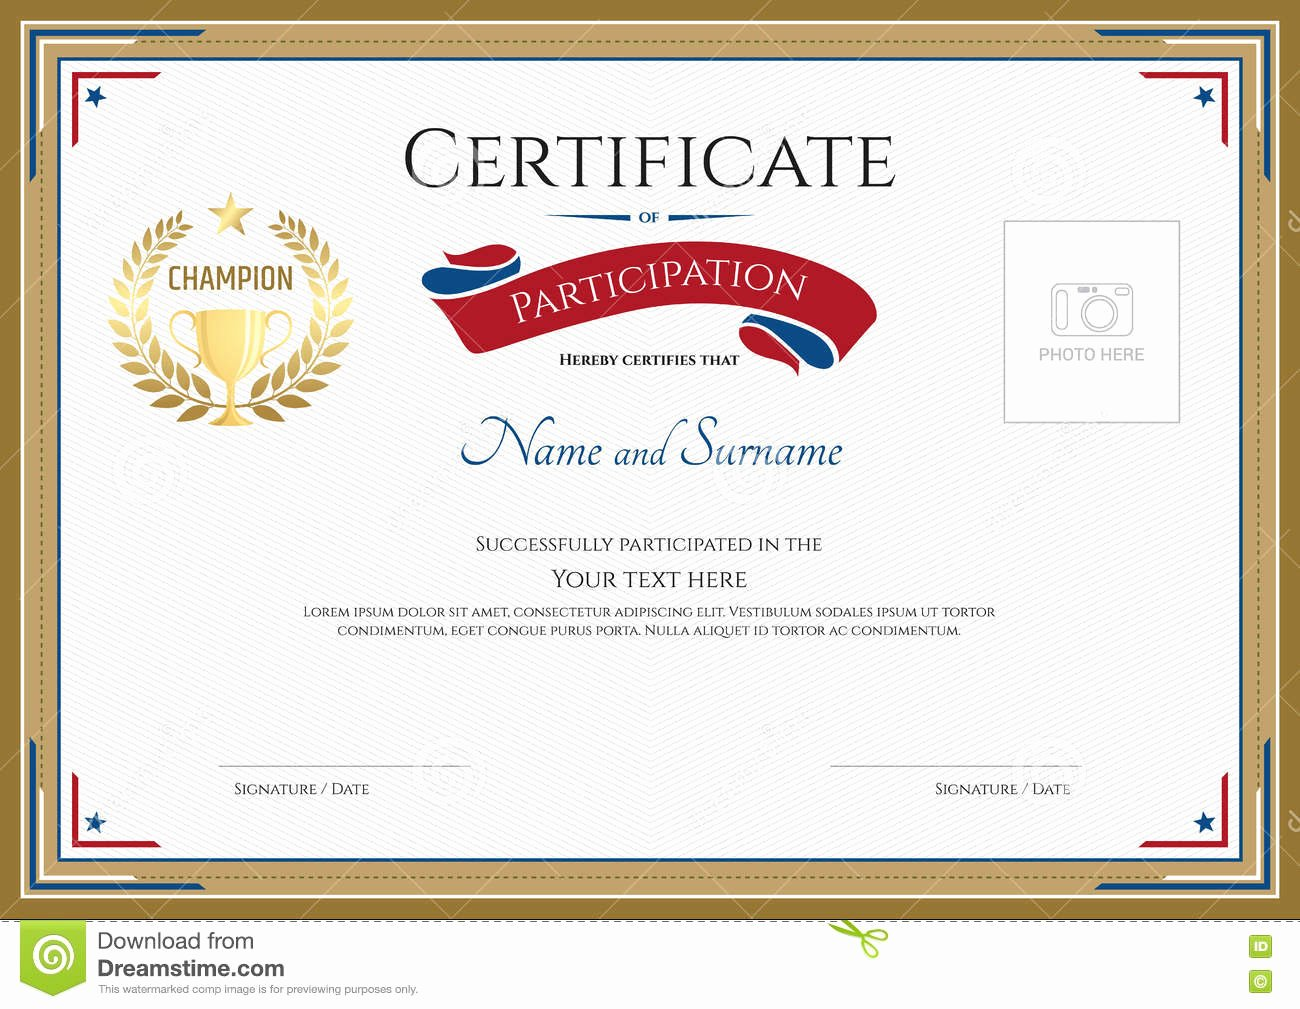 Certificate Of Participation Template Lovely Certificate Participation Template In Sport theme Stock